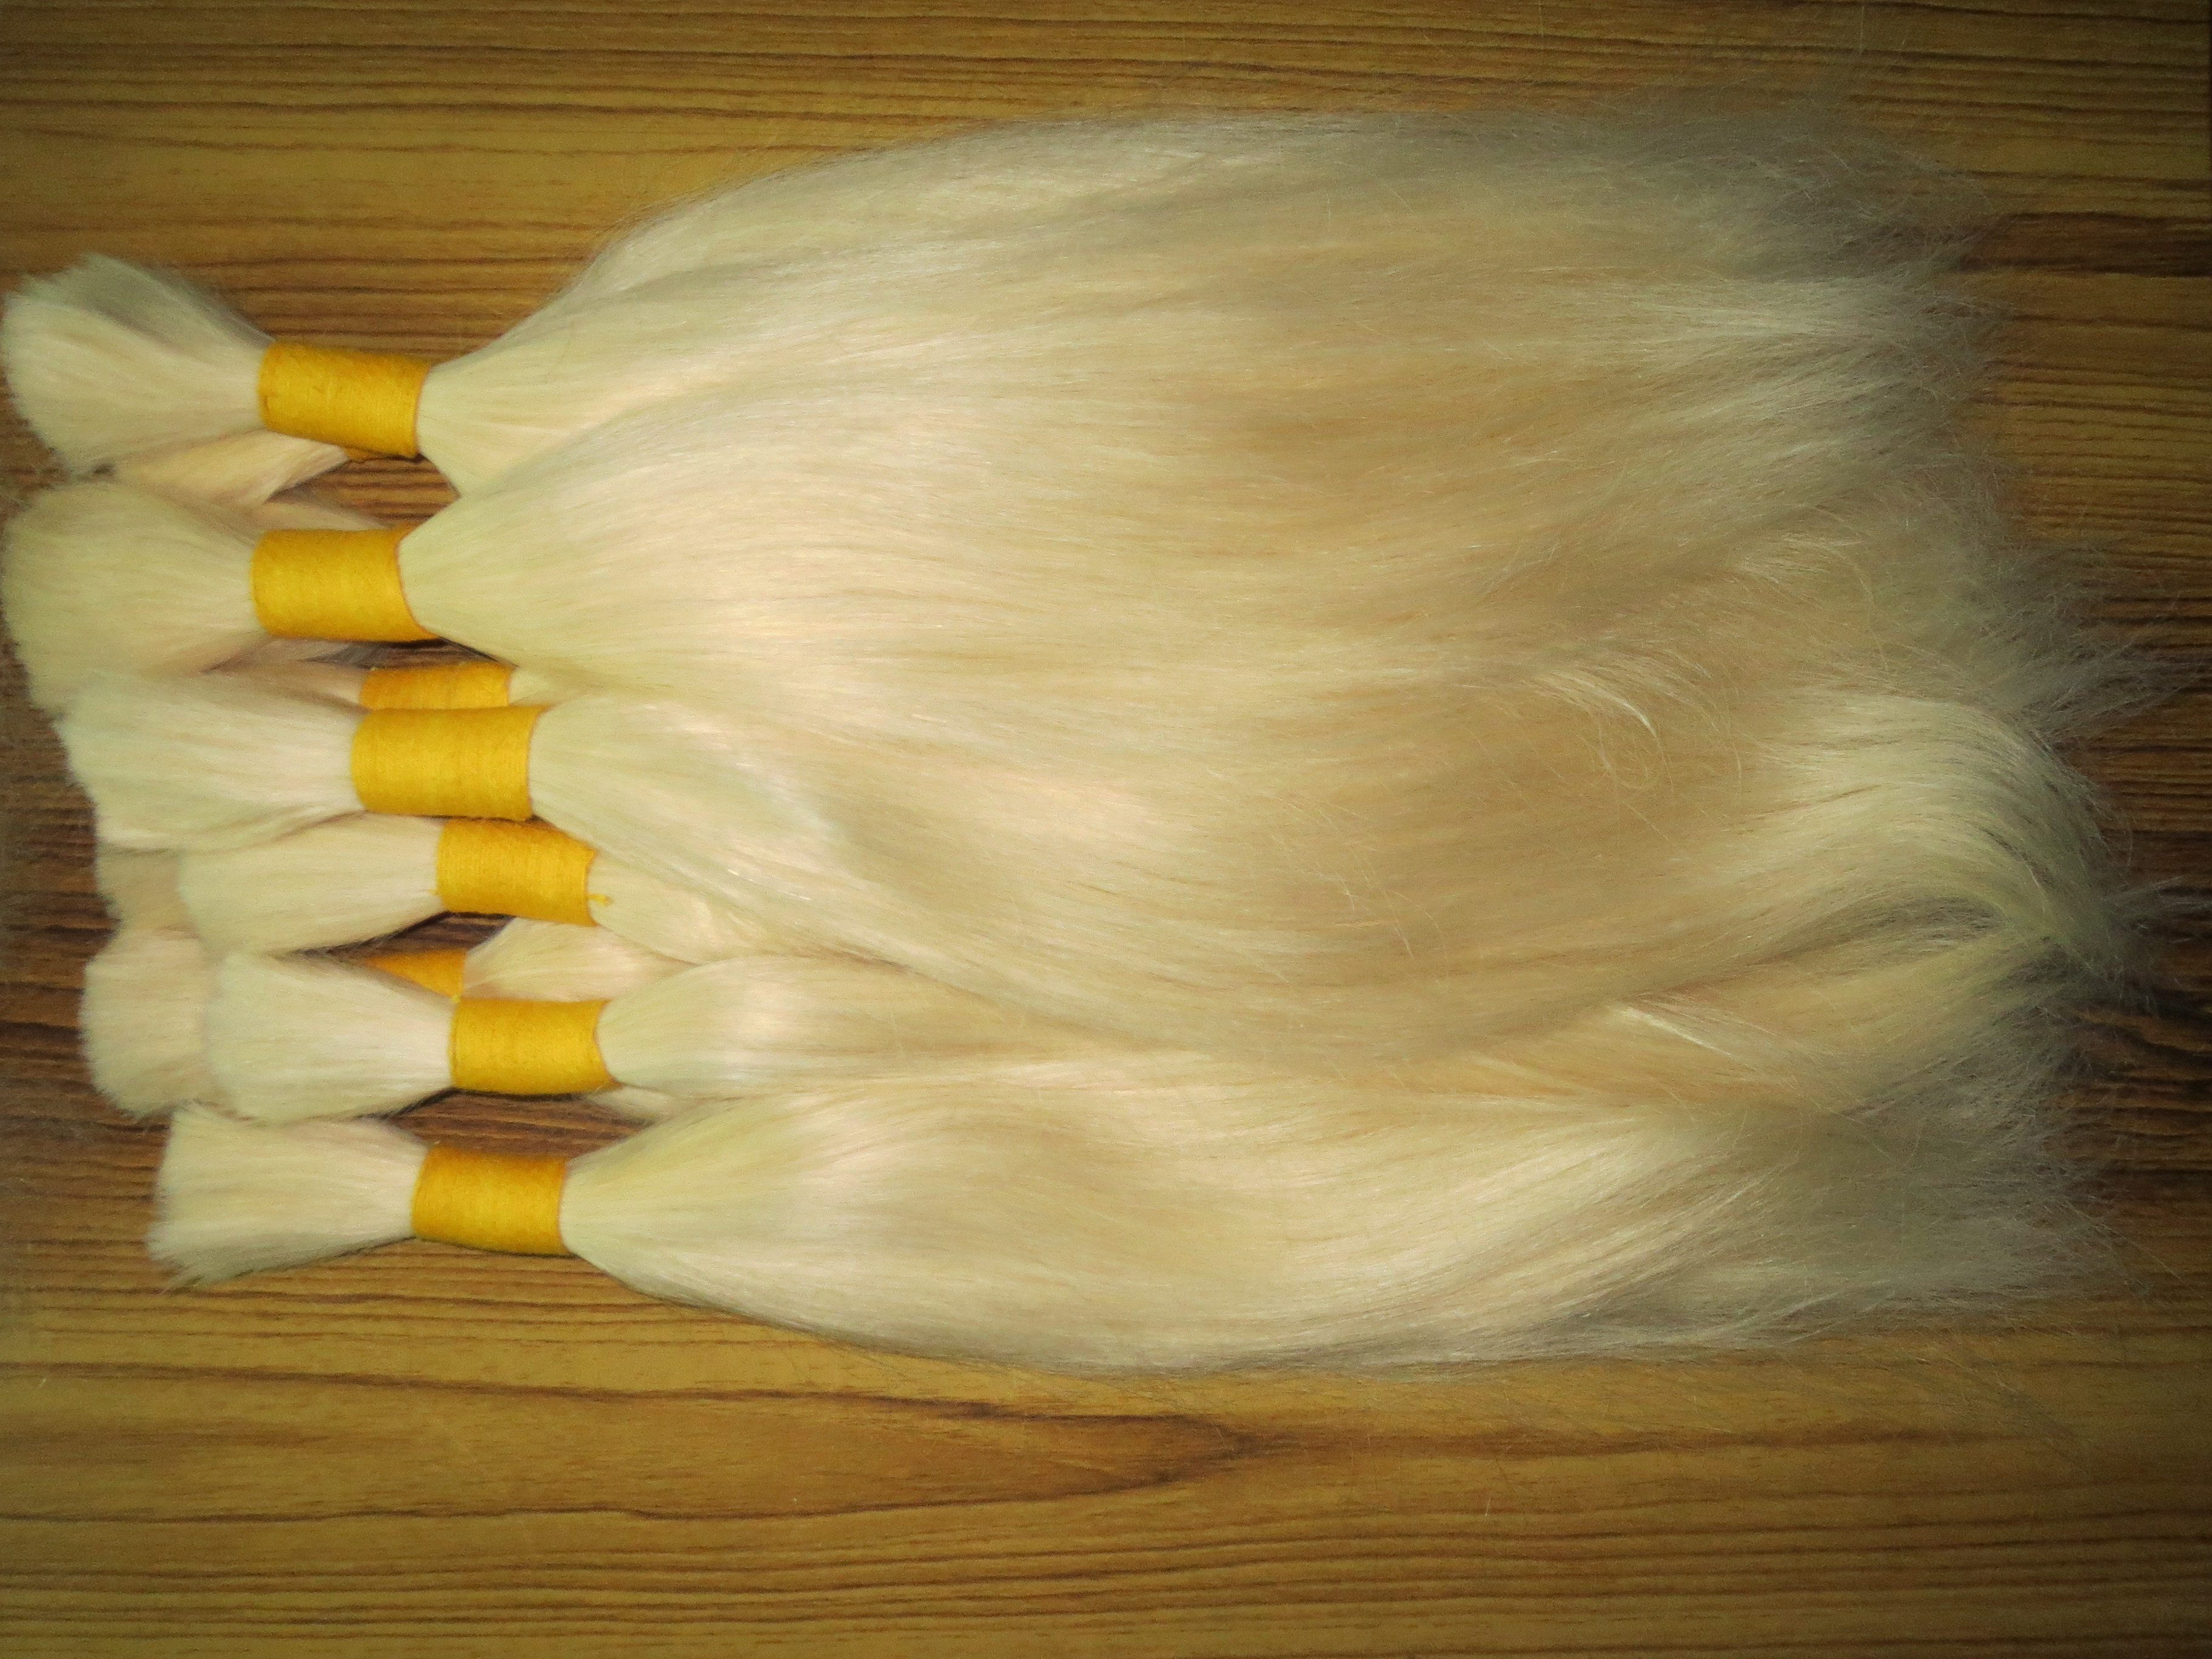 IBS EXHIBITION HAIR PRODUCT BLONDE HAIR